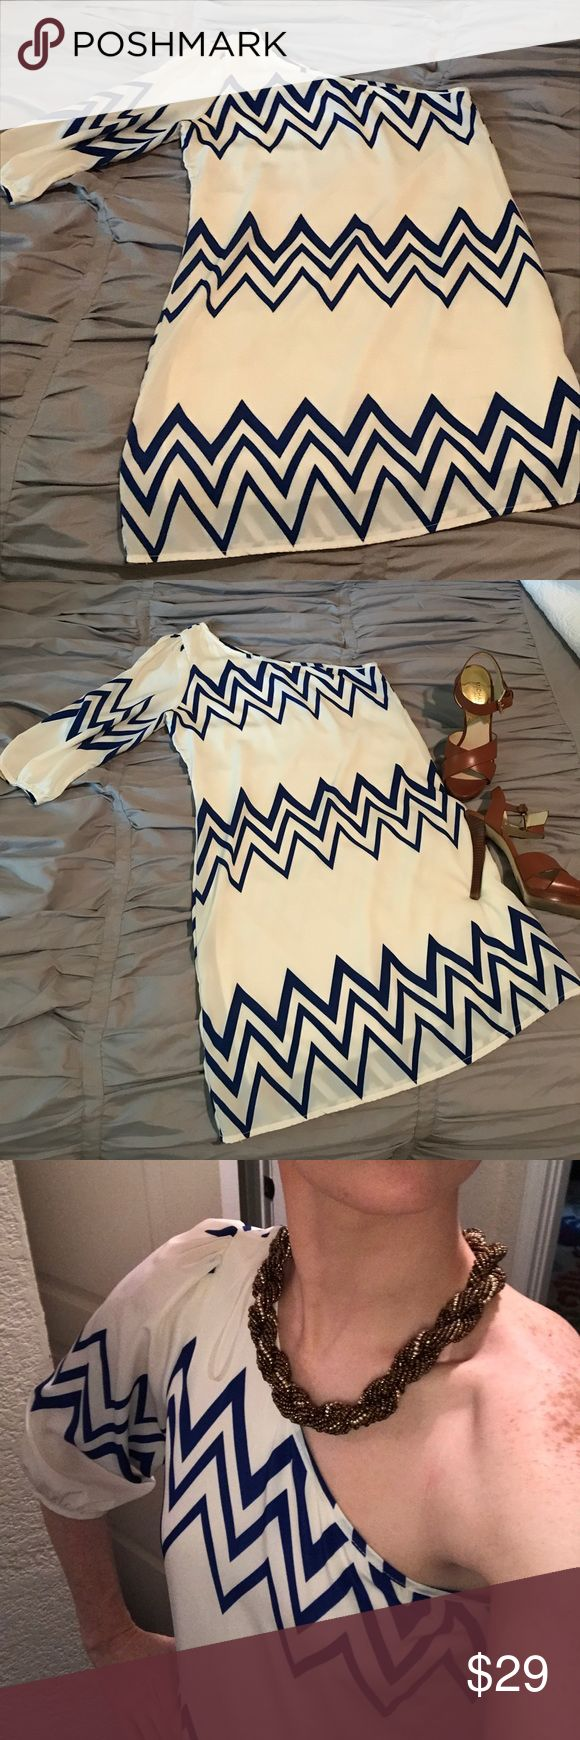 Boutique one shouldered cream & blue chevron dress Adorable blue and cream chevron one shoulder party dress! Boutique find, never worn other than fitting. Dress length is just above knee, quarter sleeve is just above elbow. Fits comfortably around the bust (34B bust) and is a flowy sheath silhouette. Perfect for dinner or a night on the town paired with wedges this summer! Peach Love Cream Dresses One Shoulder